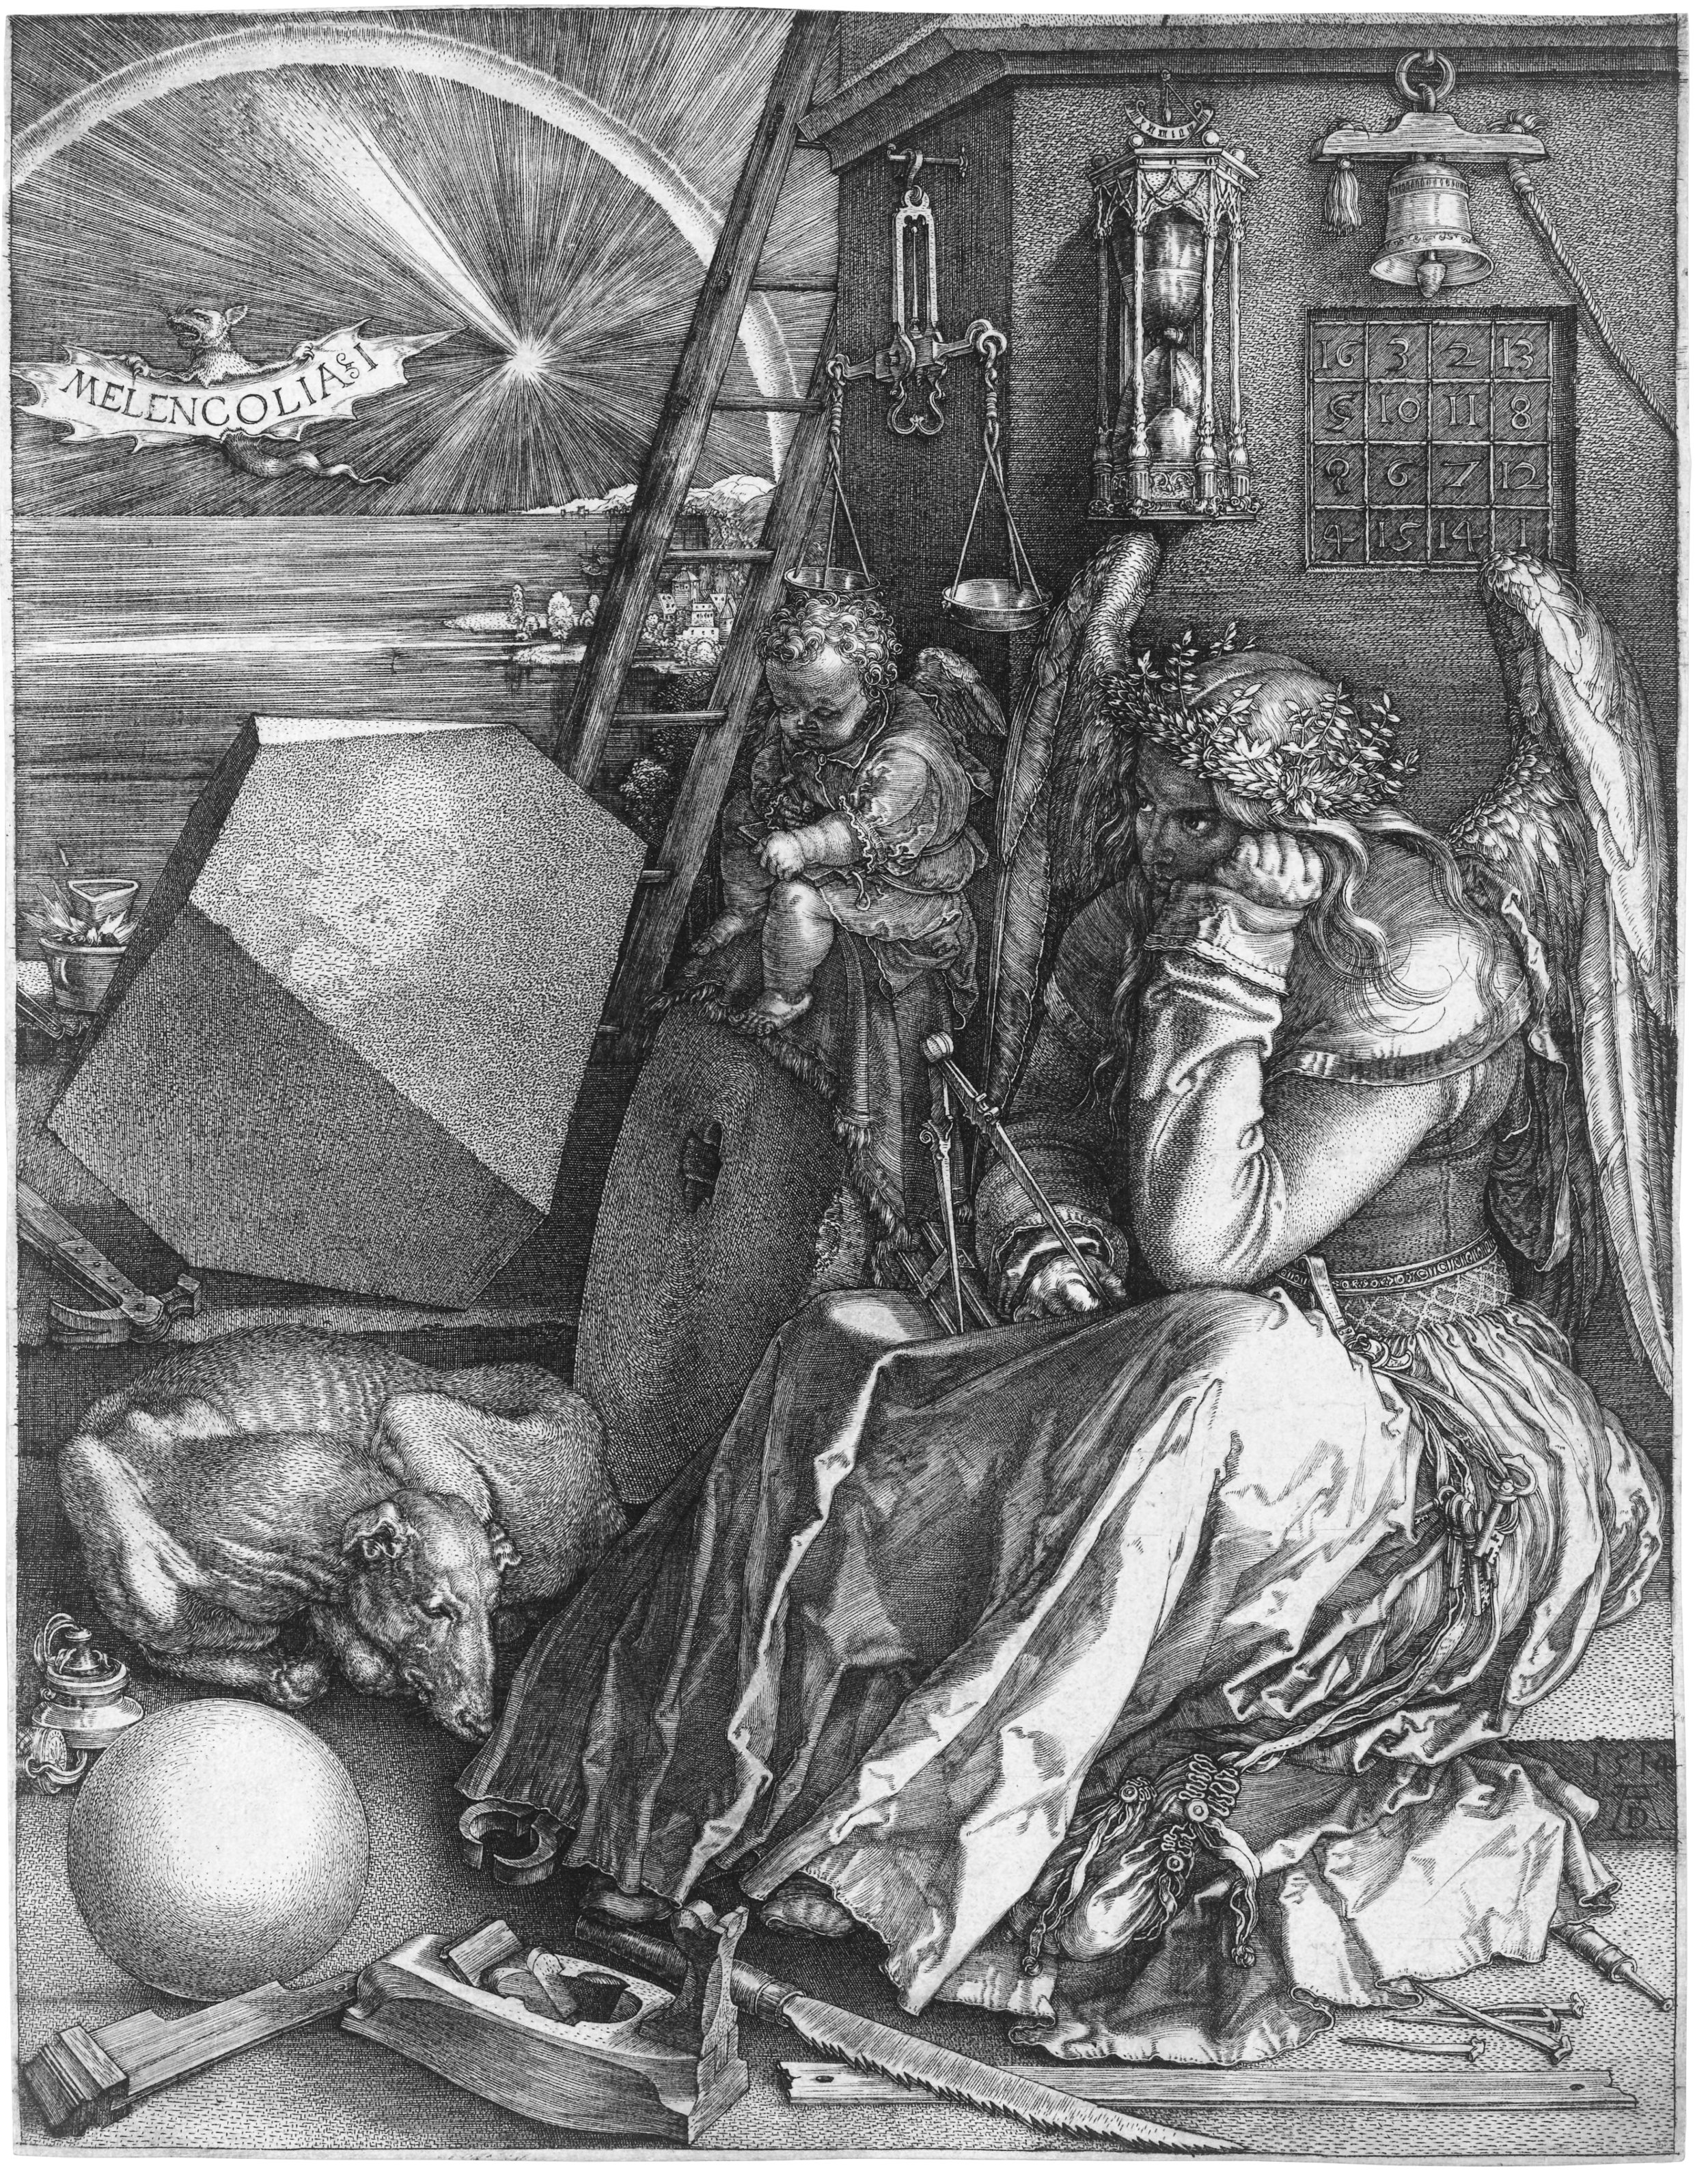 Melencolia I is a 1514 engraving by the German Renaissance artist Albrecht Dürer.